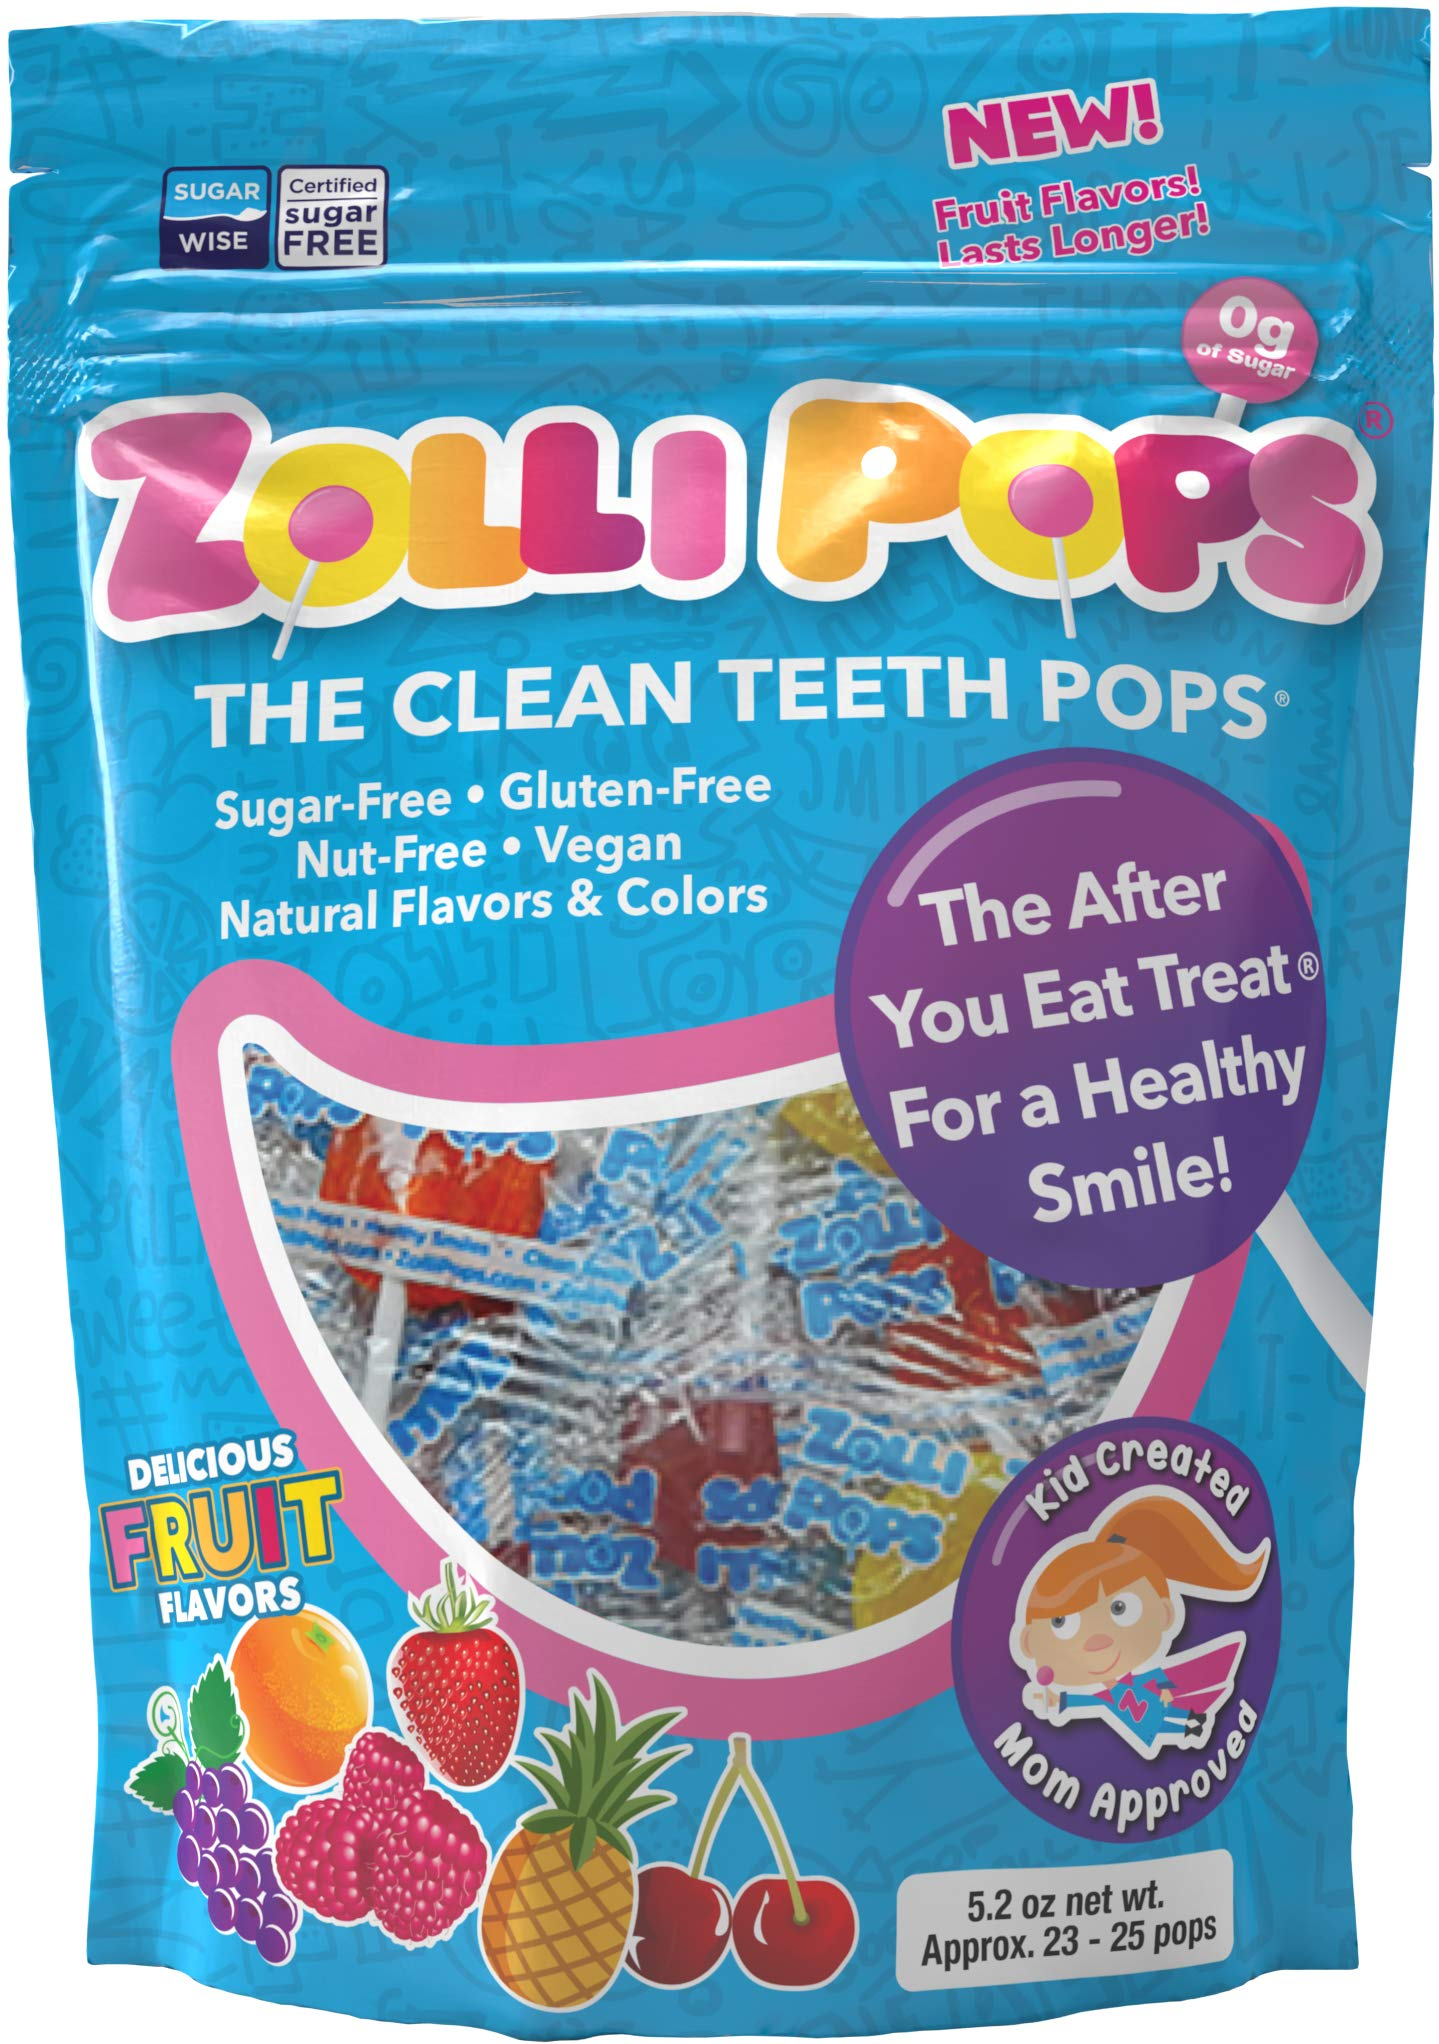 Zollipops The Clean Teeth Pops, Anti Cavity Lollipops, Delicious Assorted Flavors, Variety, 25 Count